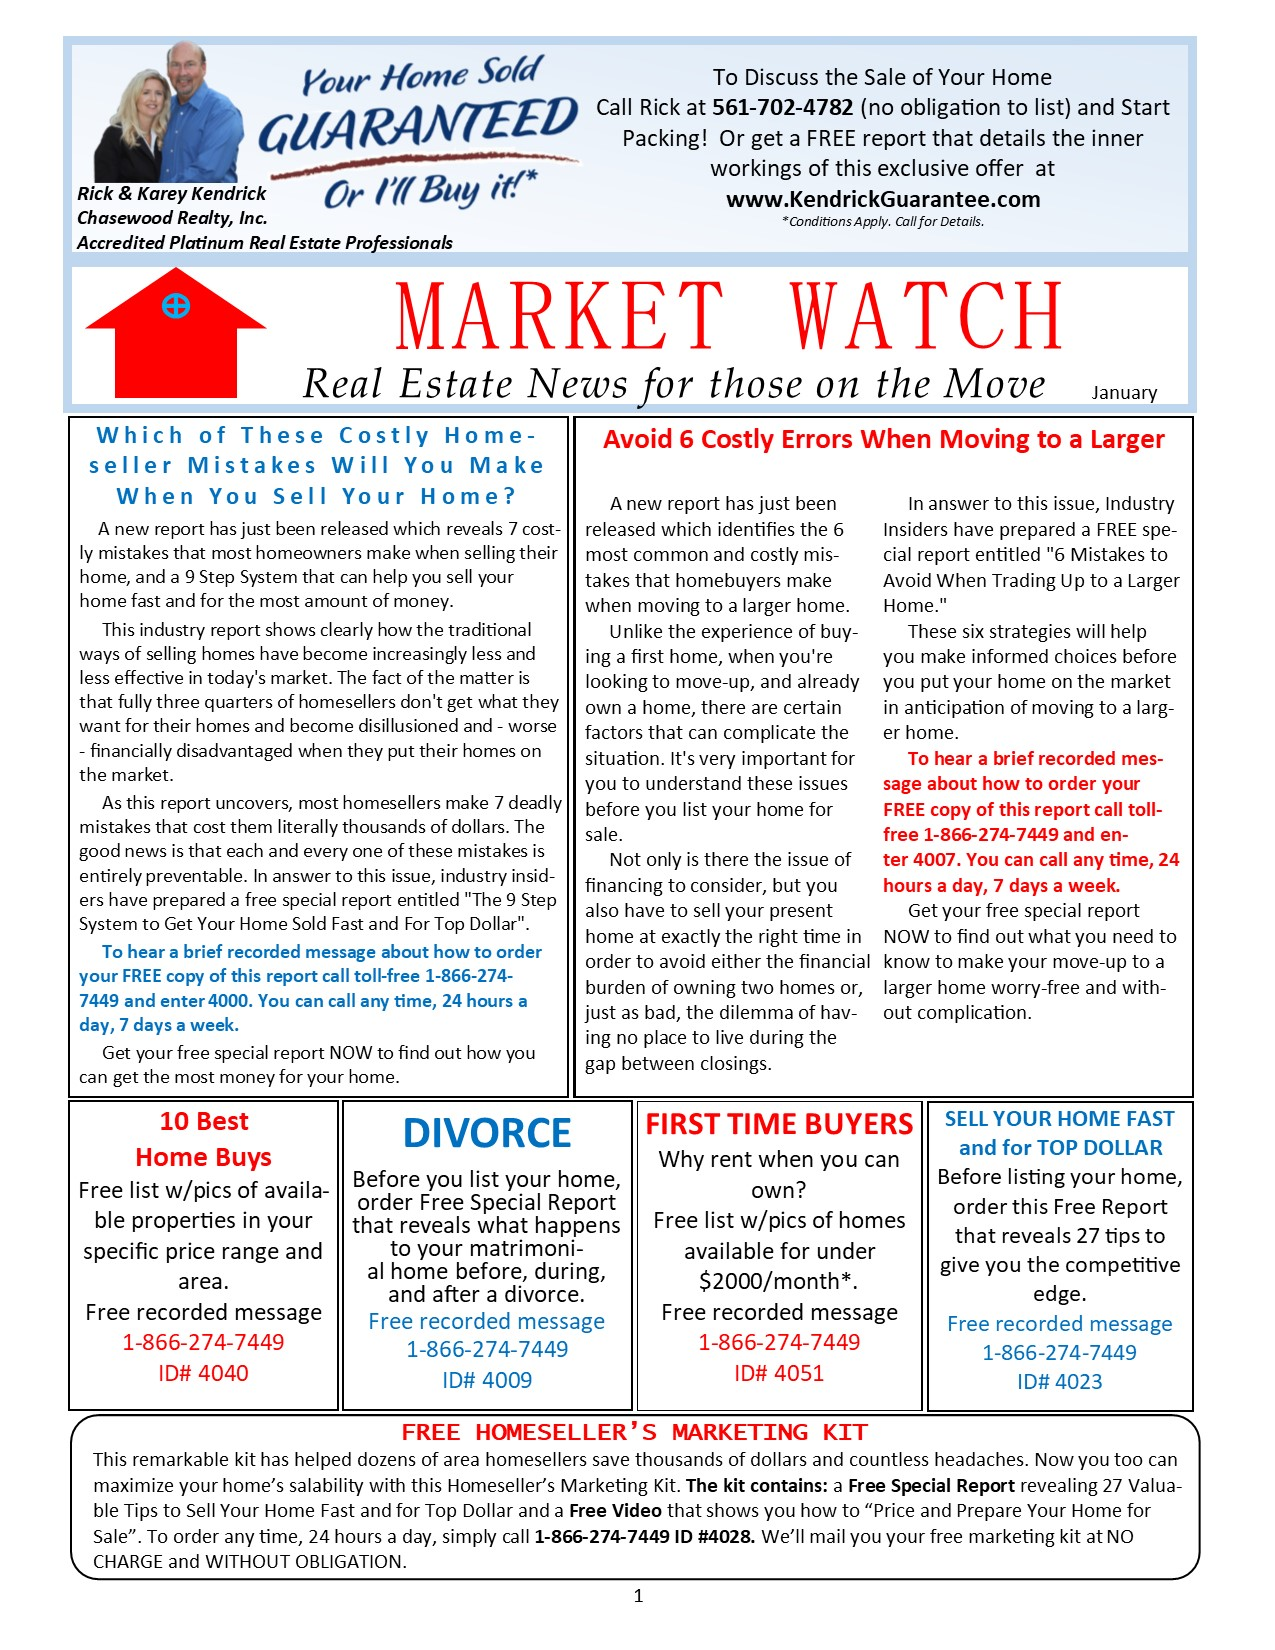 Market Watch Newsletter January 2020